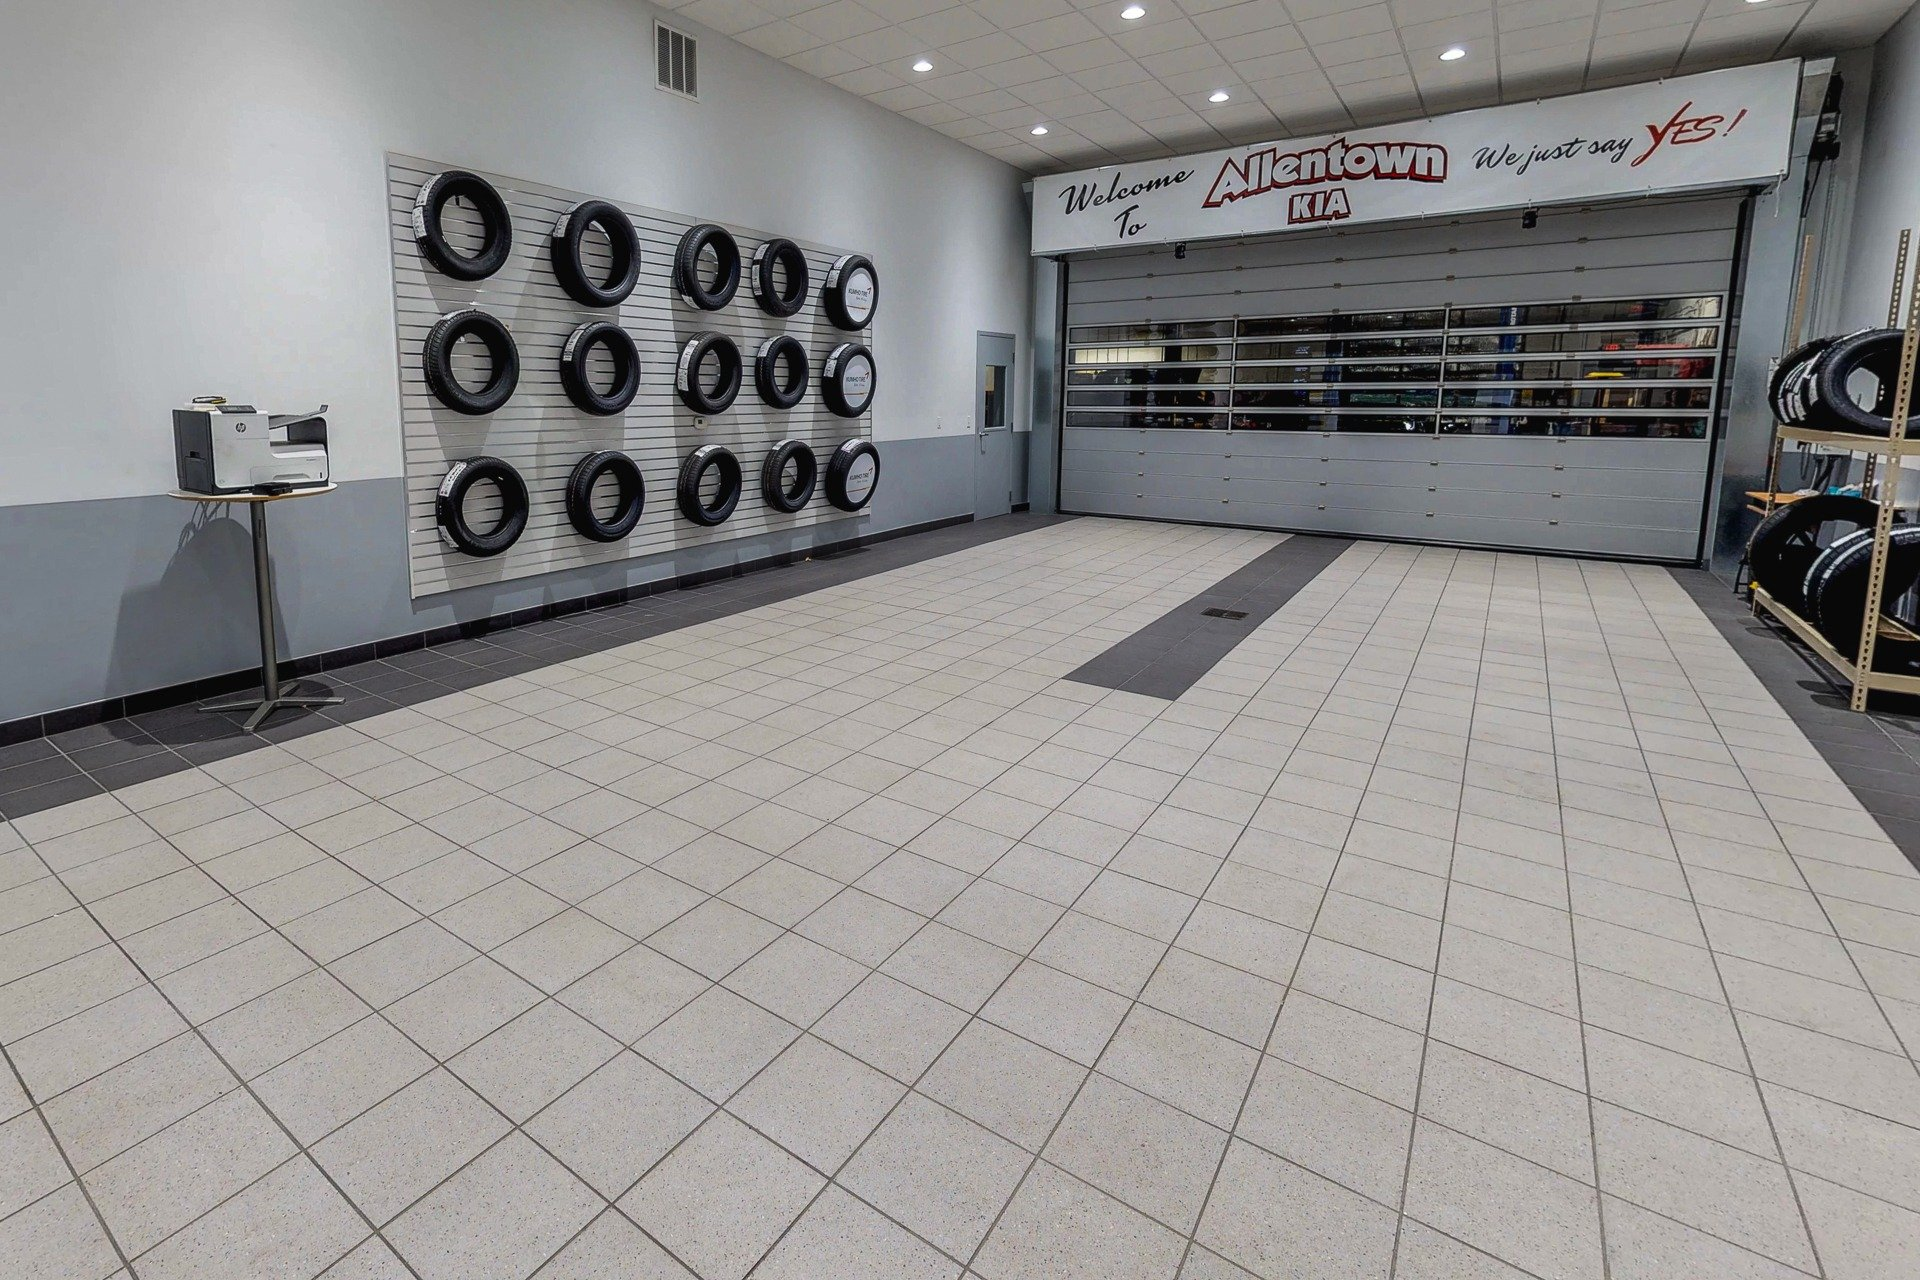 Kia Allentown Virtual Tour